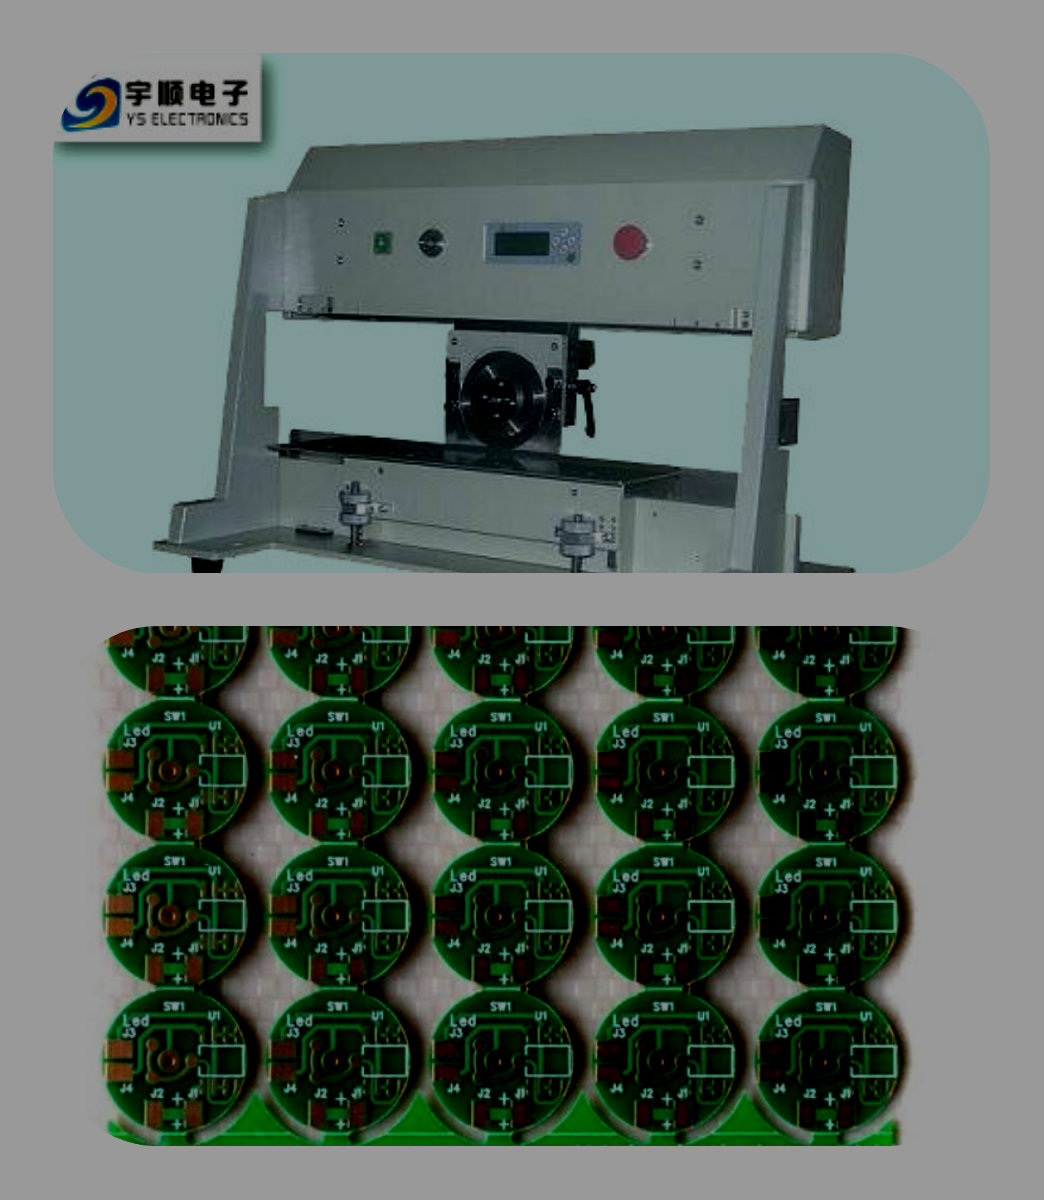 Pcb Separator Depaneling On Sale Cutting Machine Metal China Automatic V Cut Singulation For Printed Circuit Depanel Maestro 4m Pcba Routing With One Day Lead Time